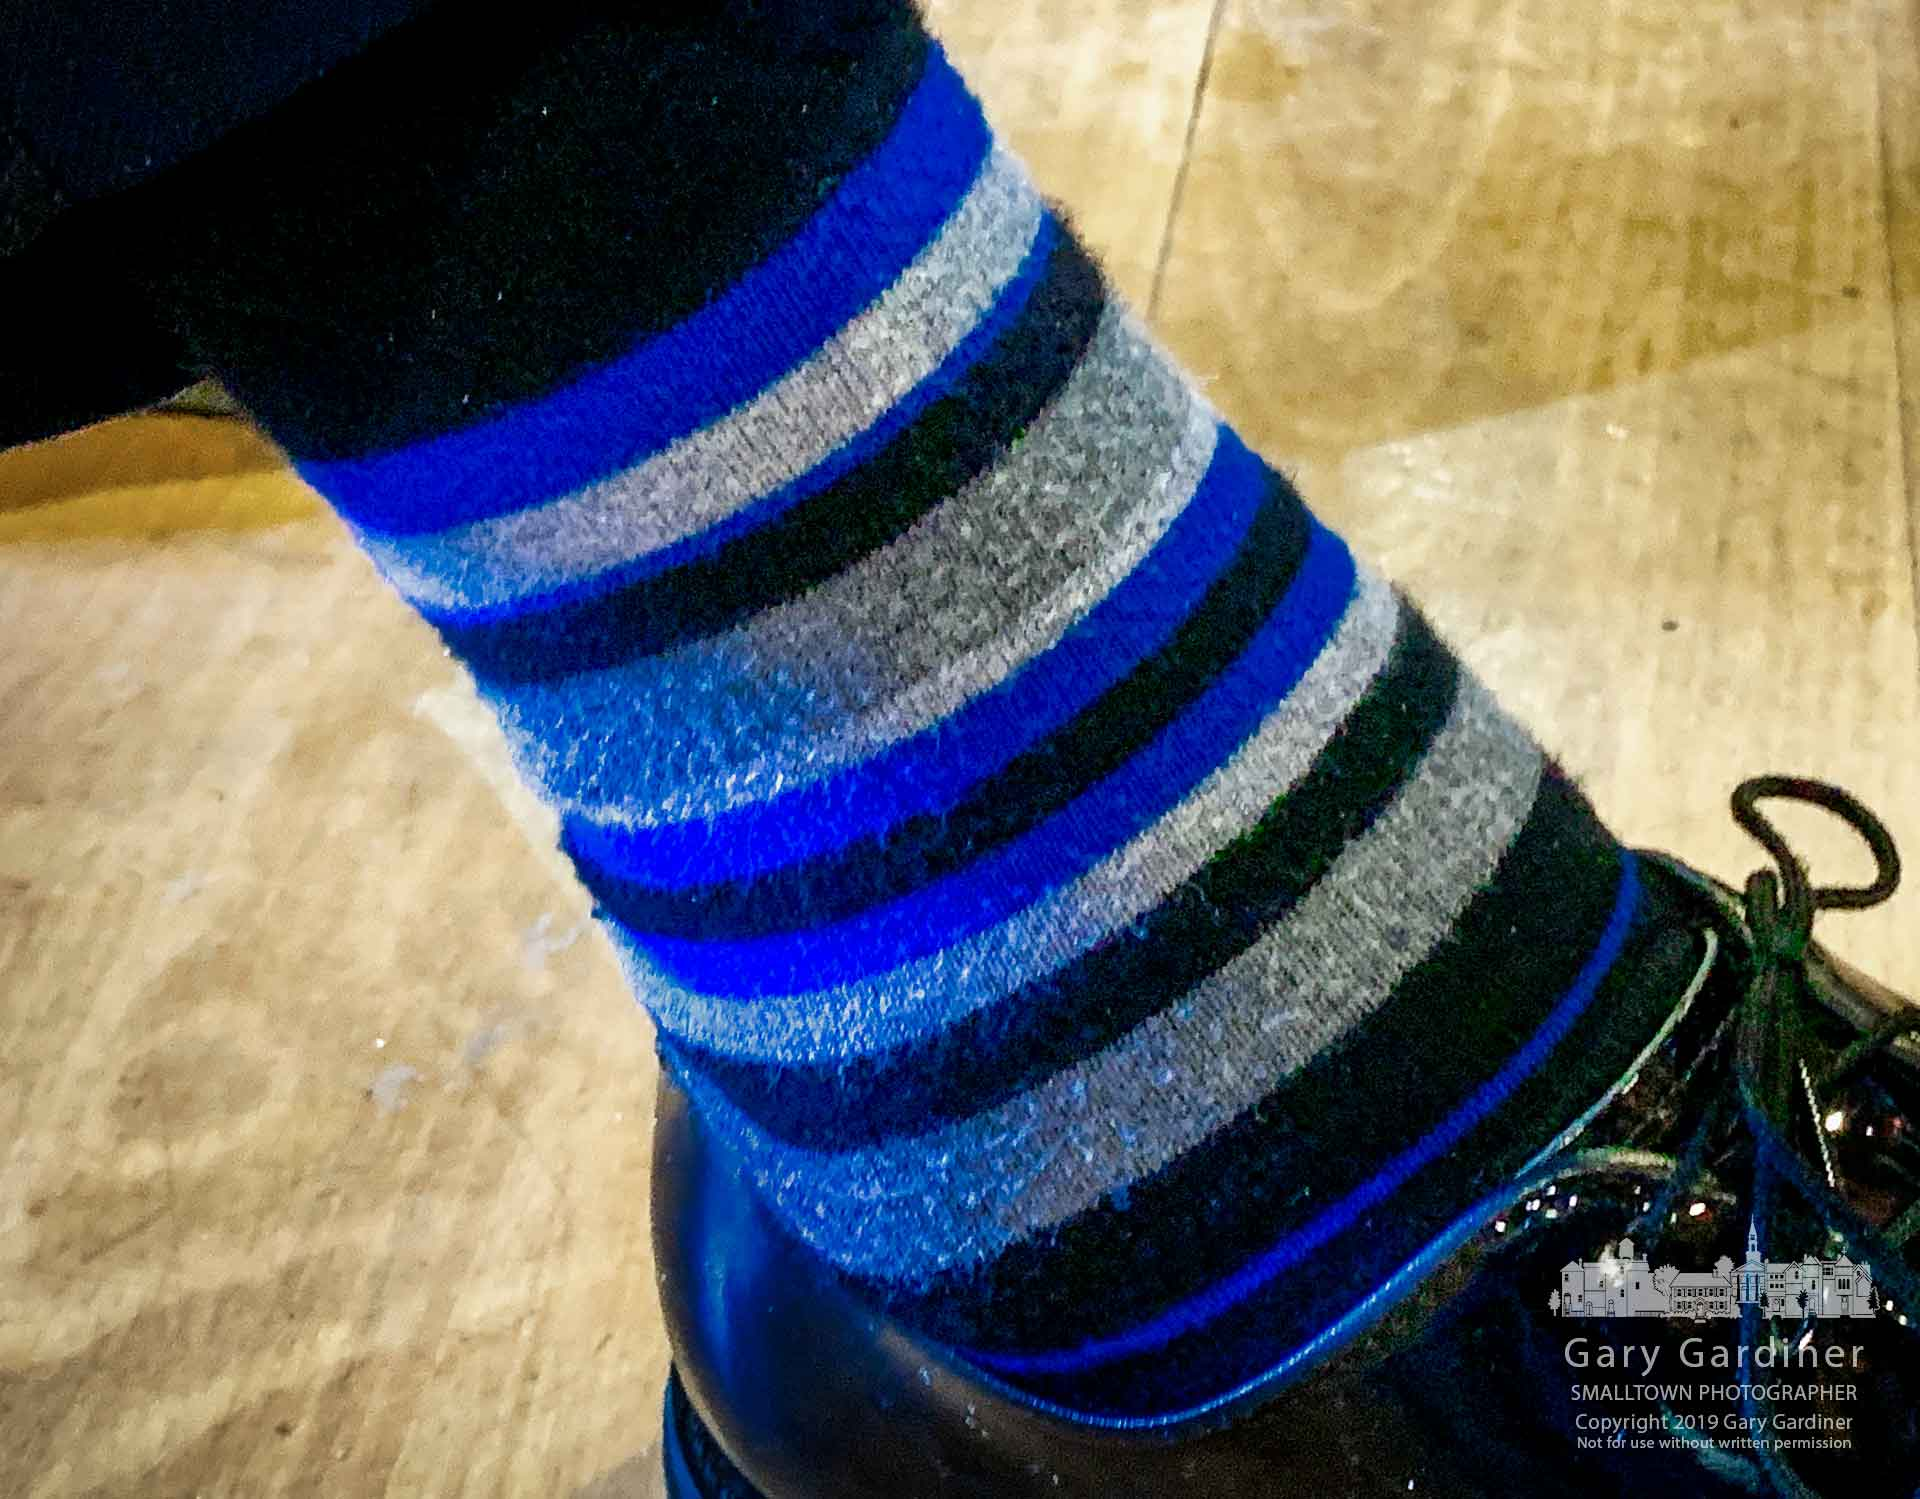 Departing Westerville Chief of Police Joe Morbitzer displays his thin blue line socks during an open house celebration marking his move to the Ohio Bureau of Criminal Investigation. My Final Photo for Jan. 25, 2019.